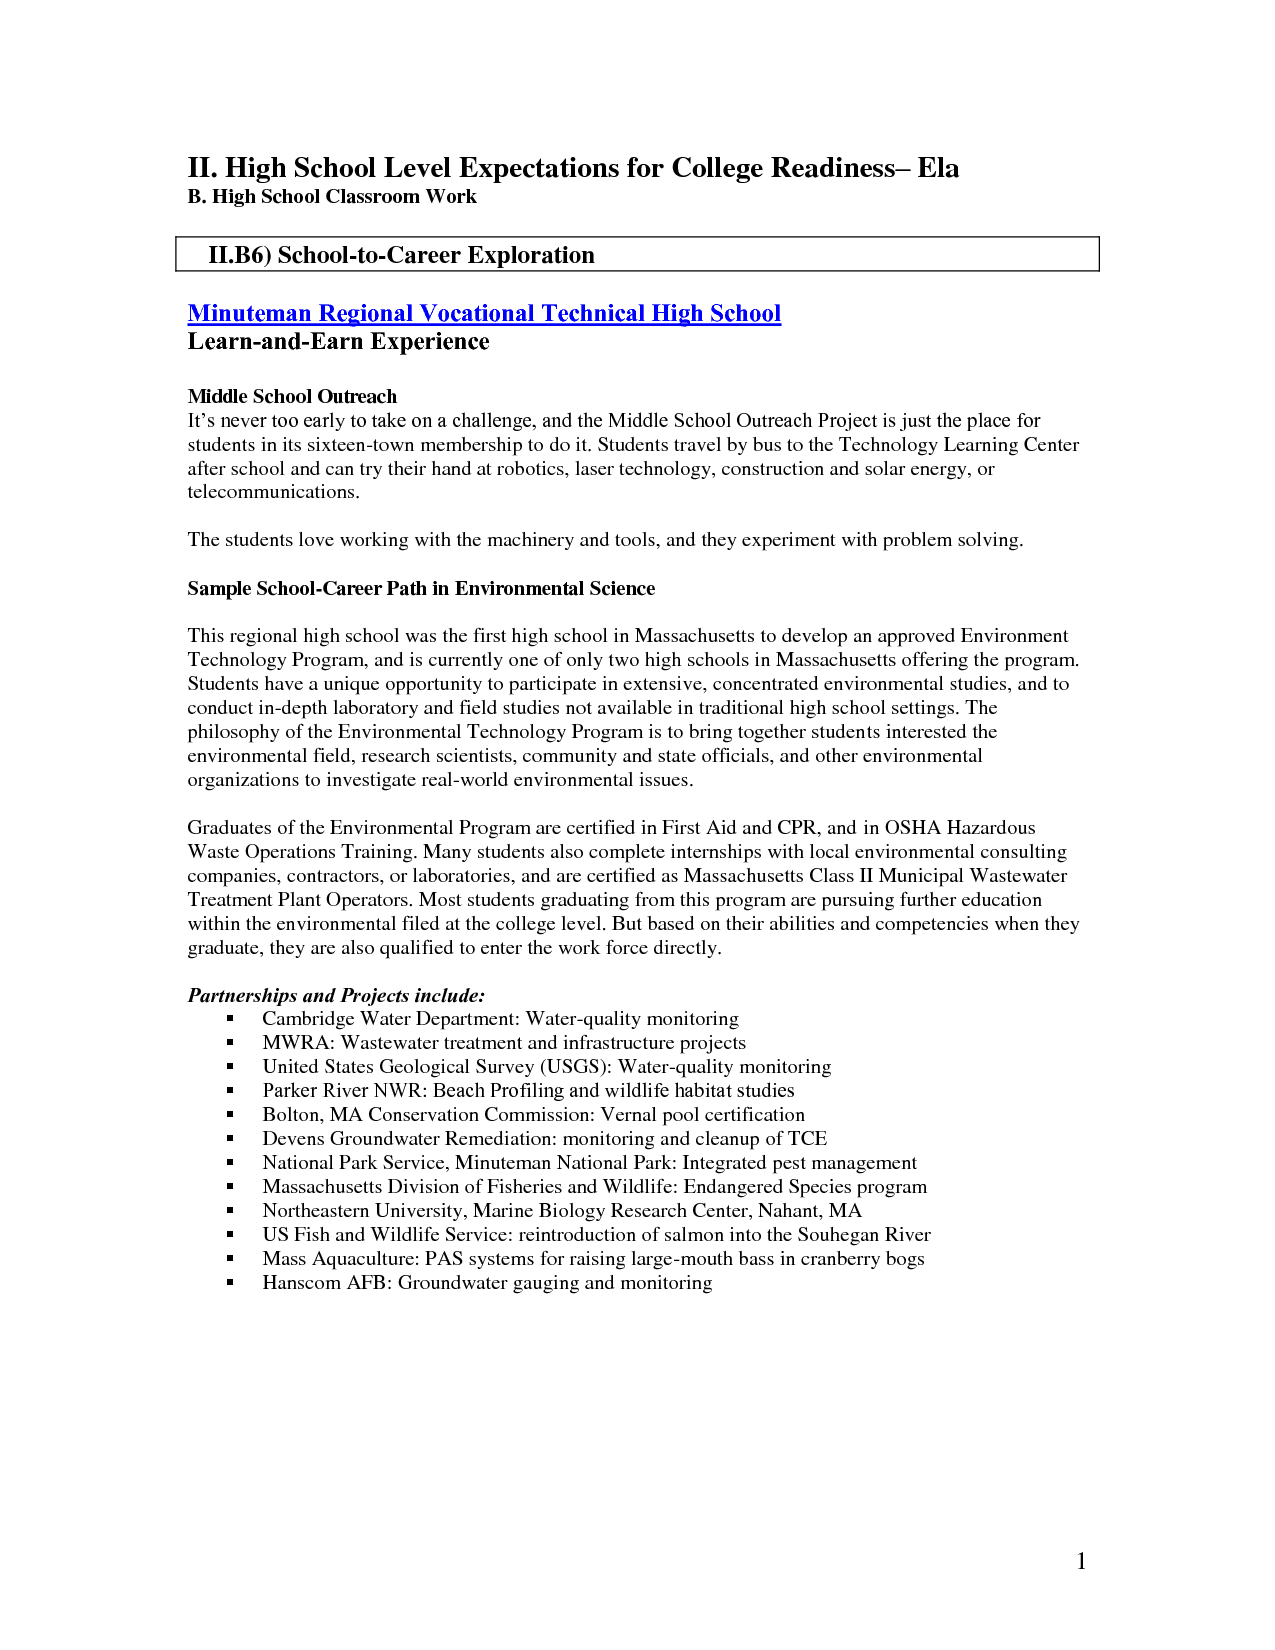 009 Middle School Research Paper Outline Template 435477 Unusual Ideas Topics Topic Full